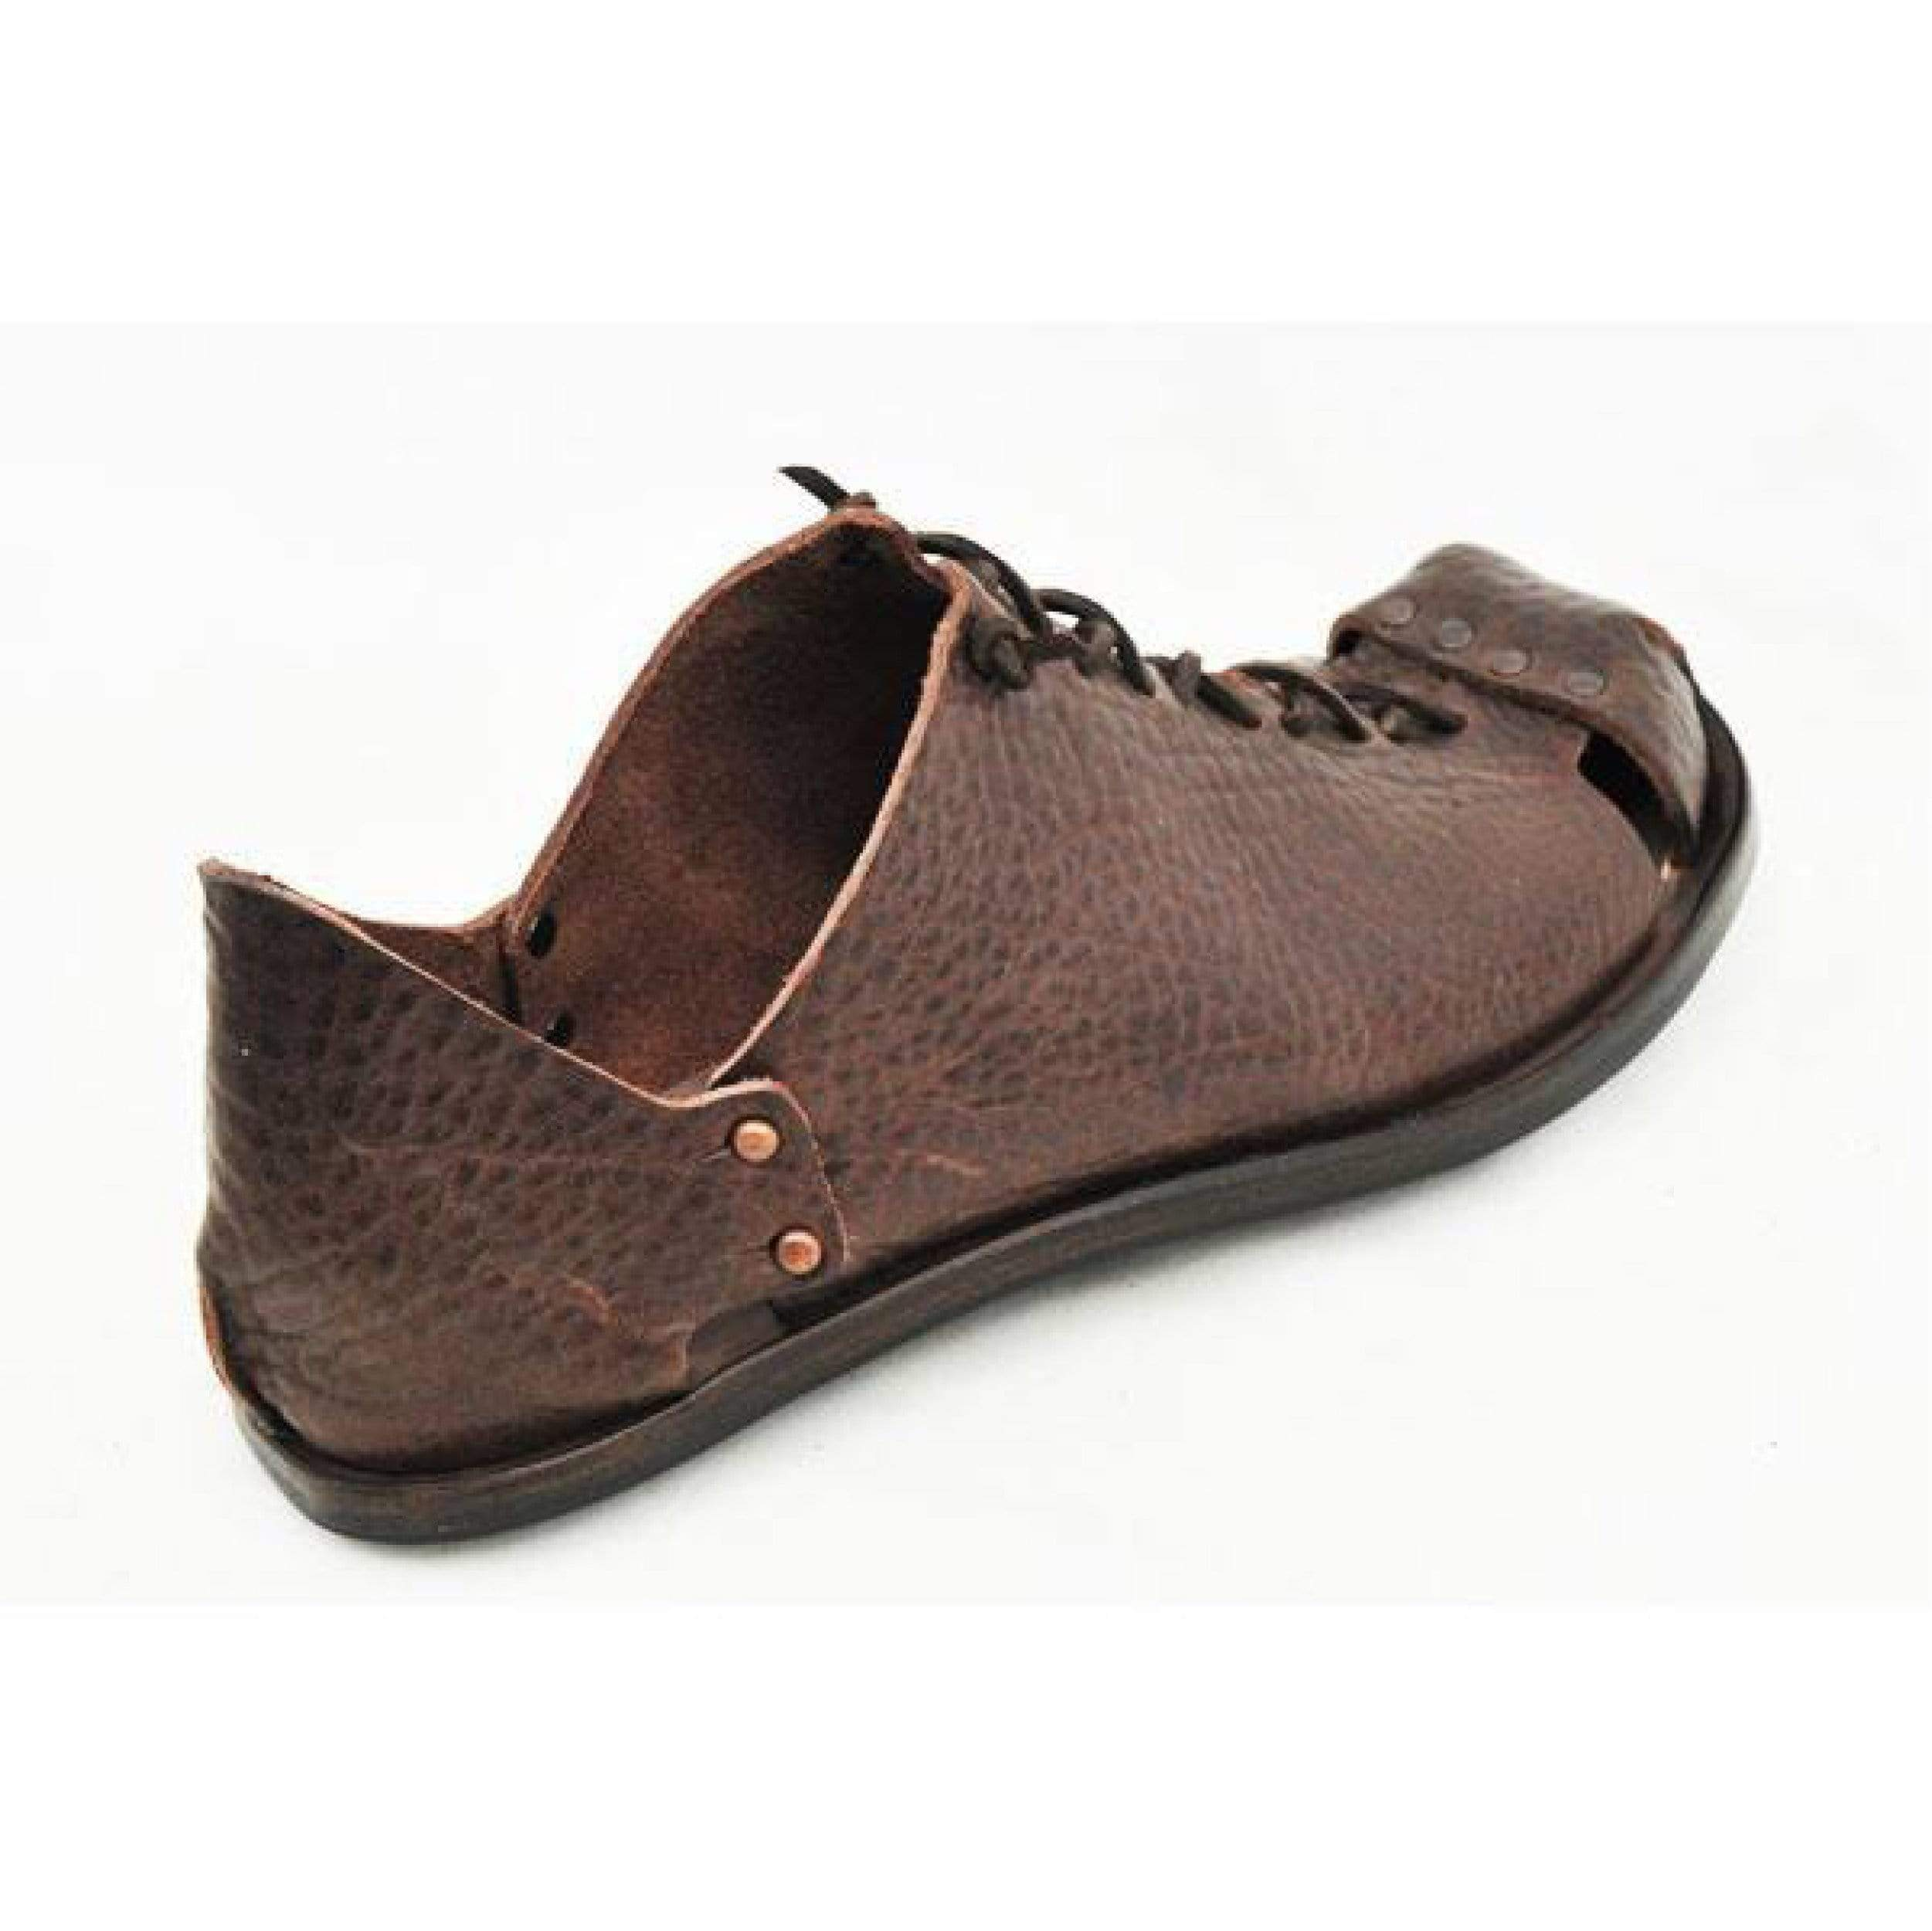 Handmade Vintage Leather Casual Shoes